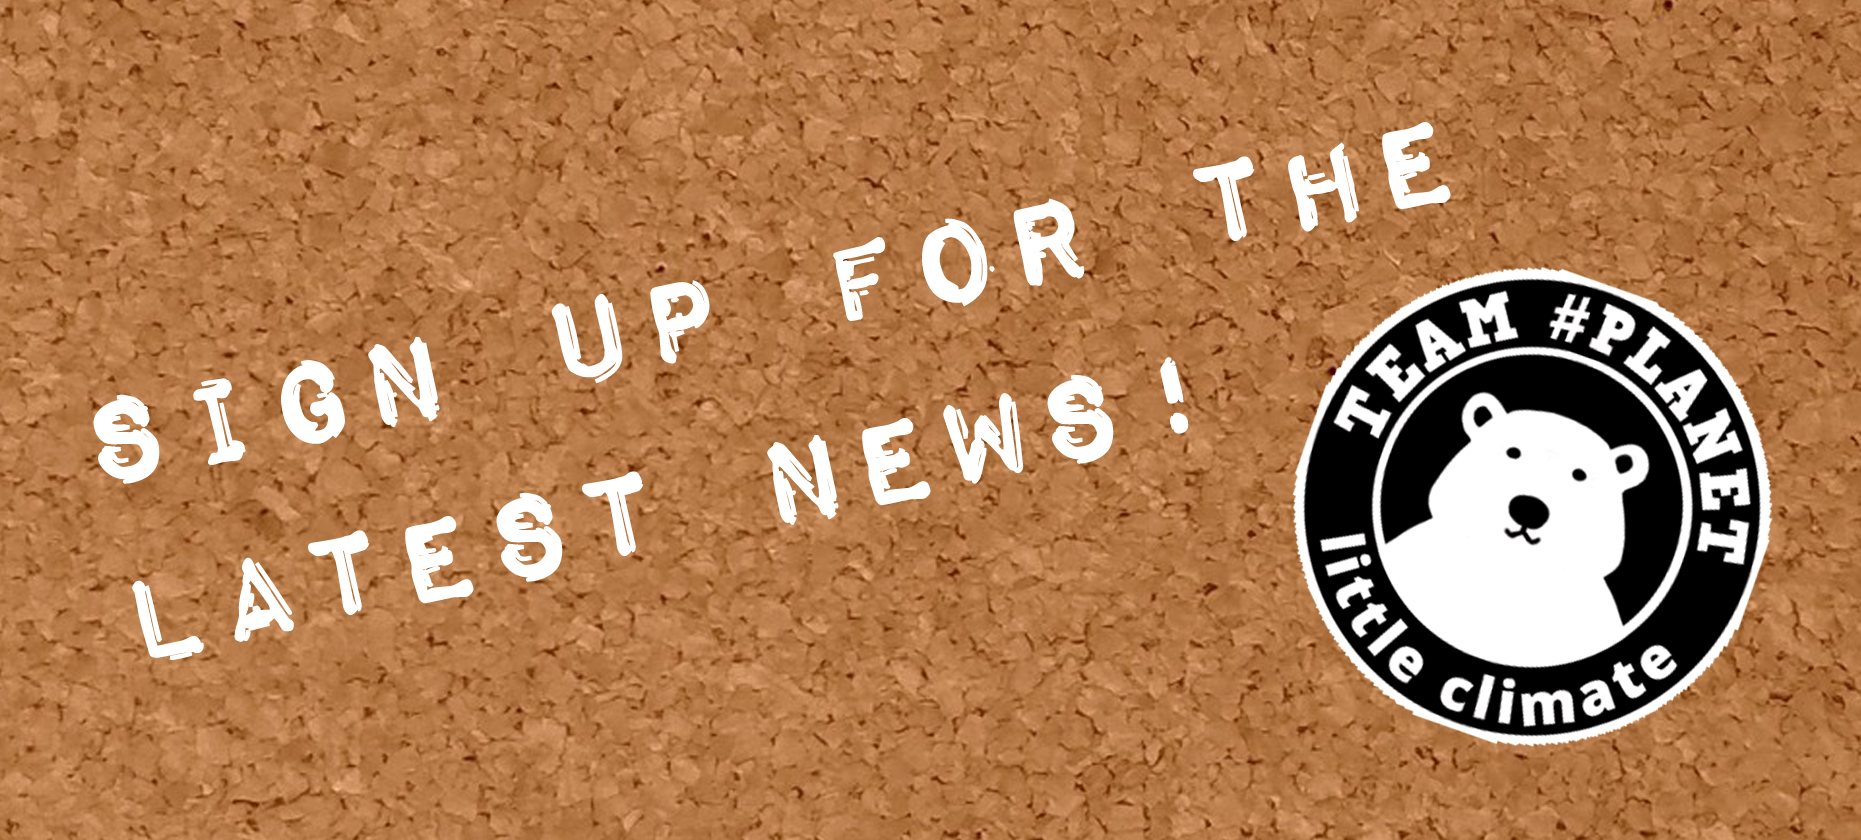 Sign up for the latest news!